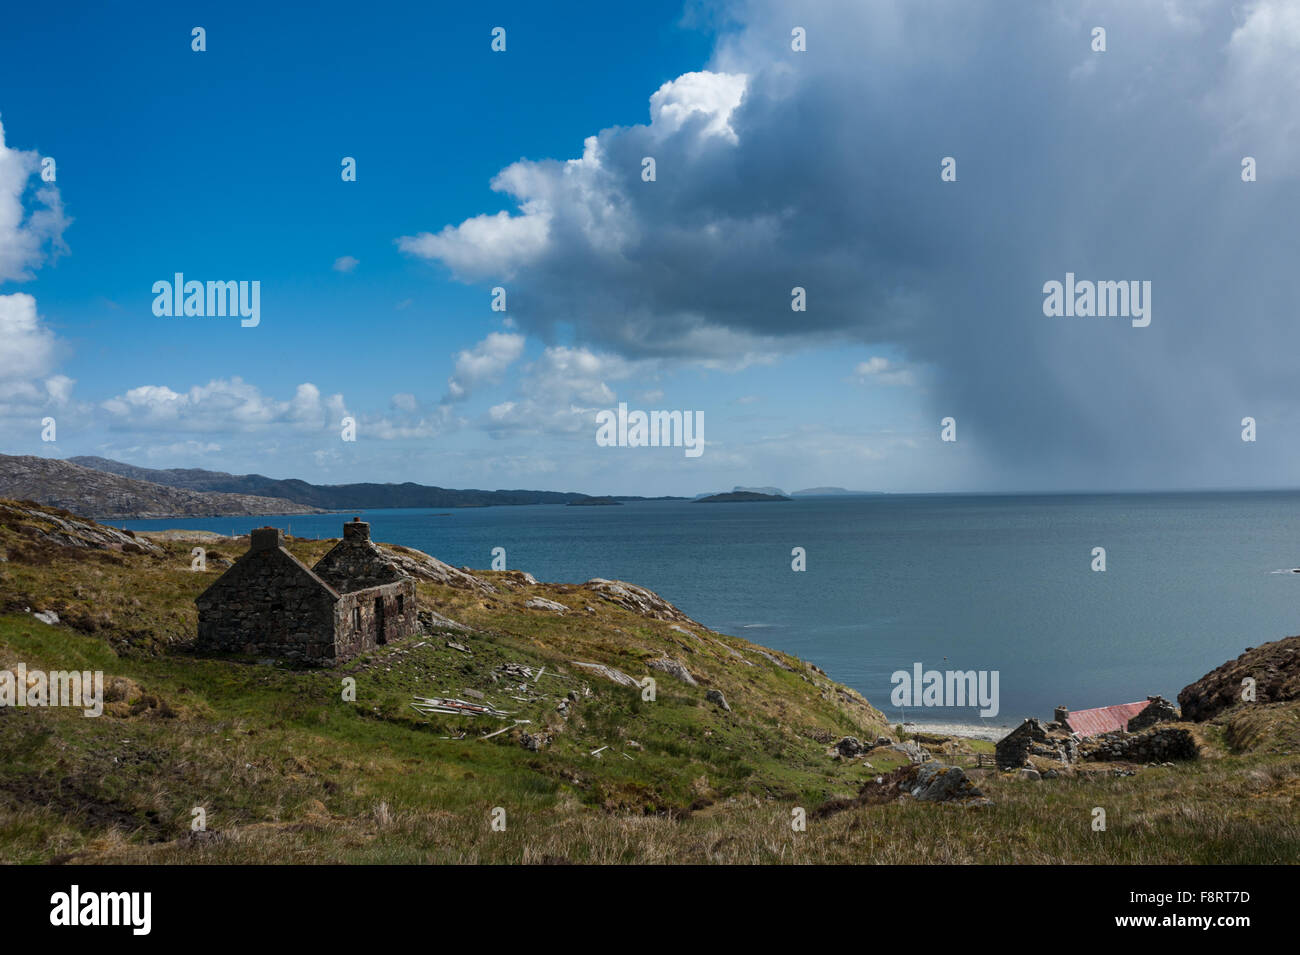 Squall in the Minch seen from Molinginish - Stock Image